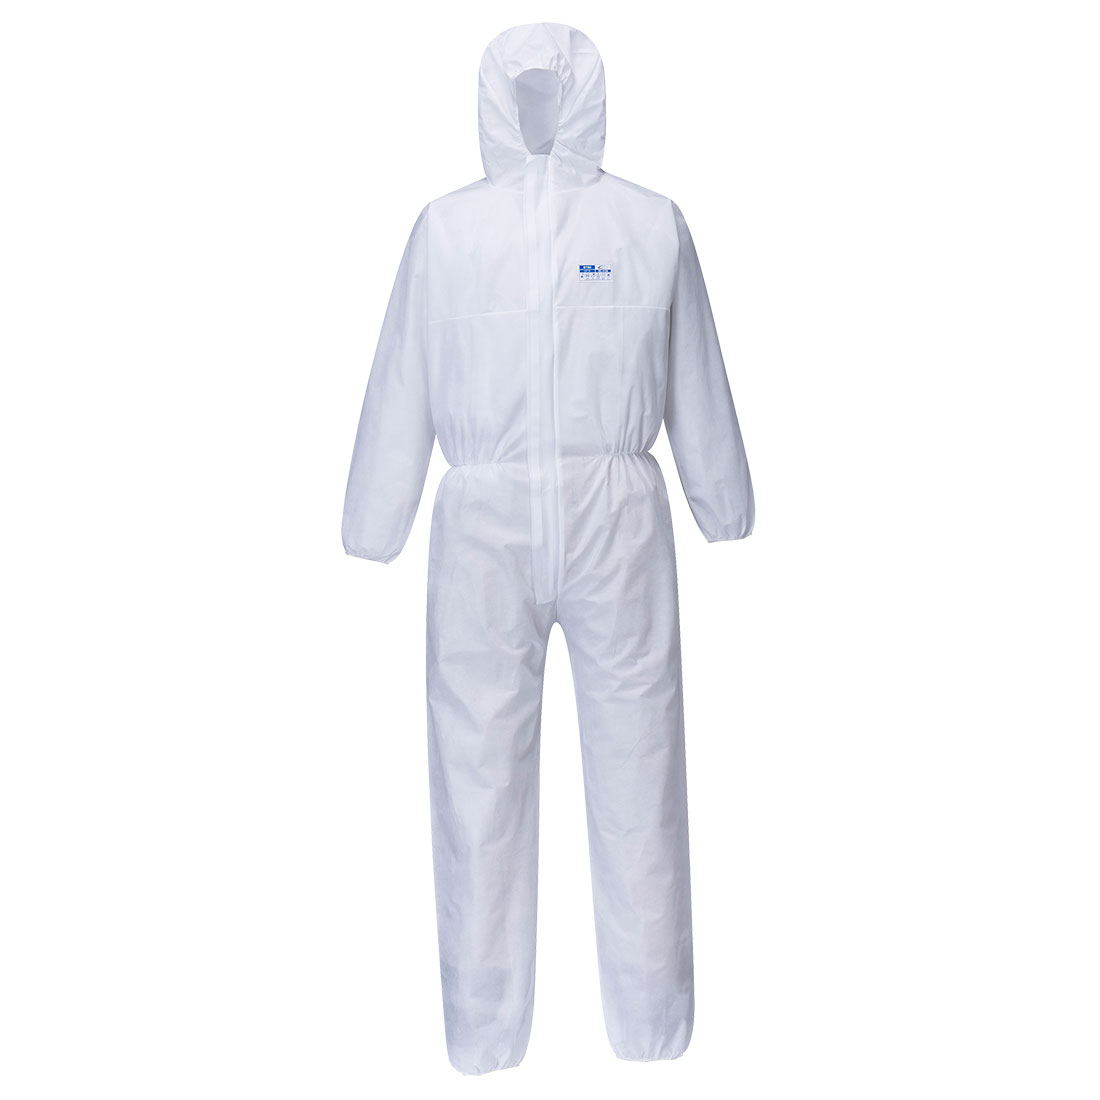 Portwest BizTex SMS 5/6 FR Coverall - ST80